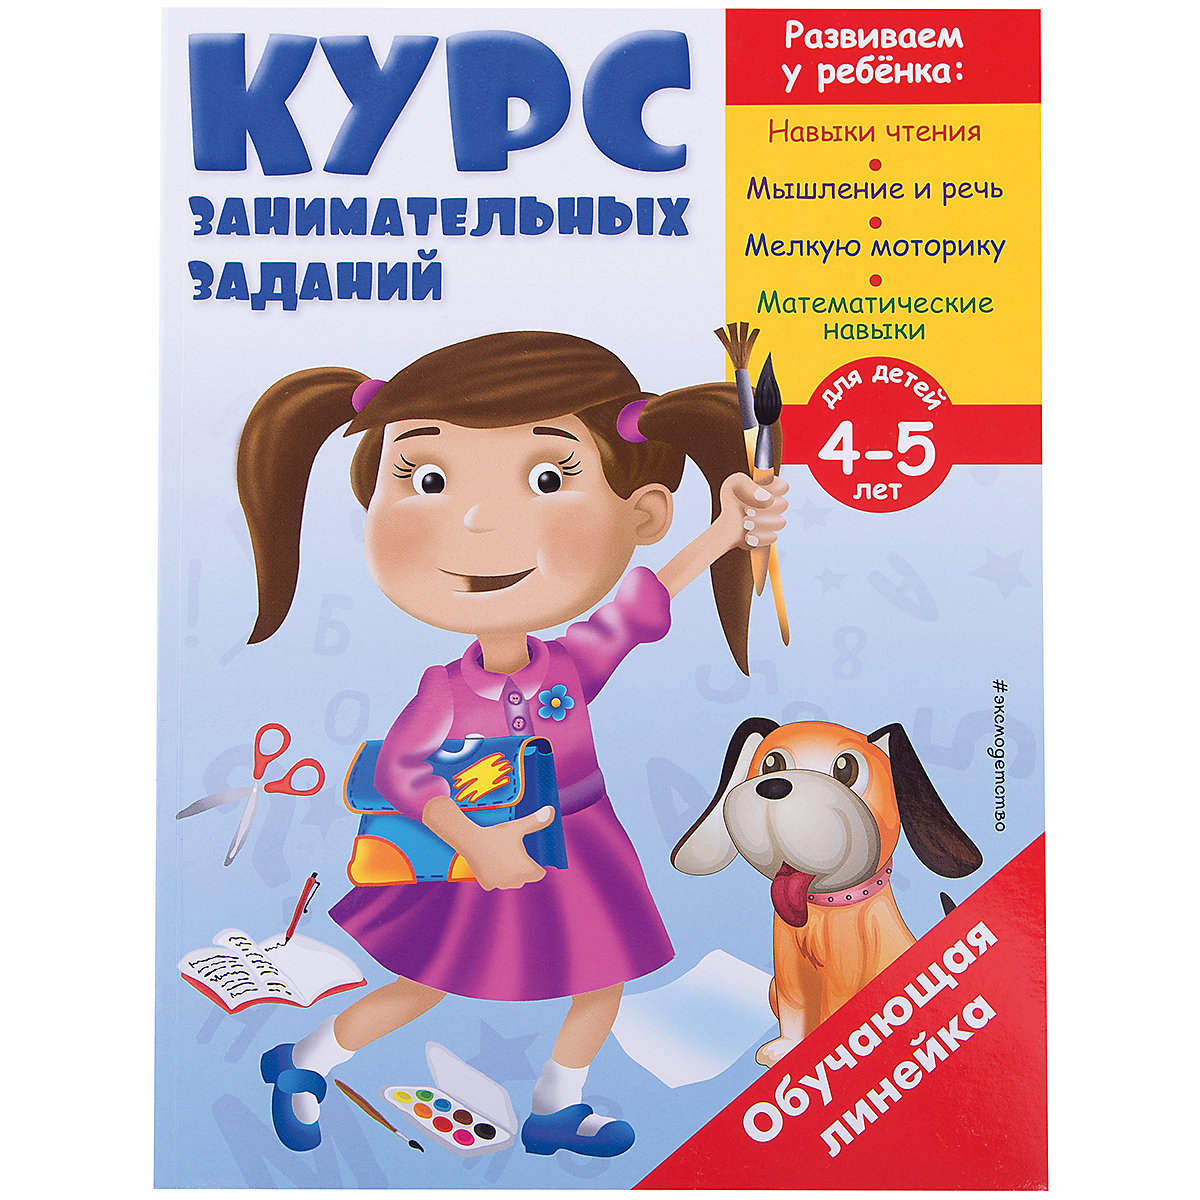 Books EKSMO 7367791 Children Education Encyclopedia Alphabet Dictionary Book For Baby MTpromo